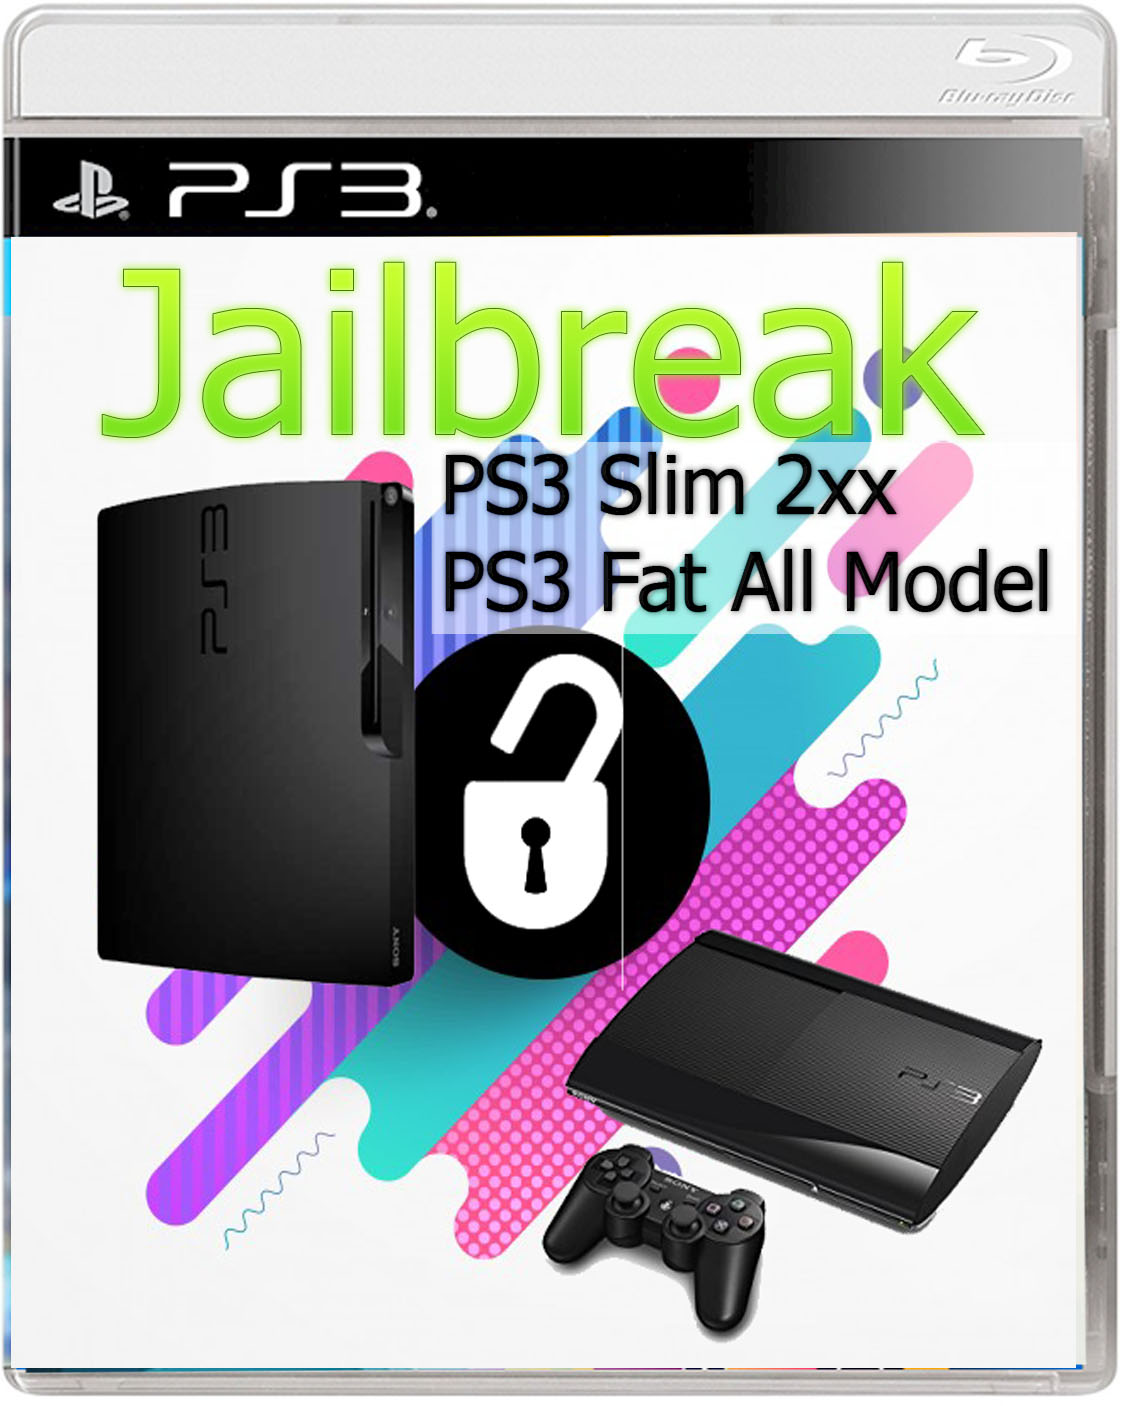 Tutorial Jailbreak PS3 PS3 Slim 2xx and PS3 Fat all models, on OFW